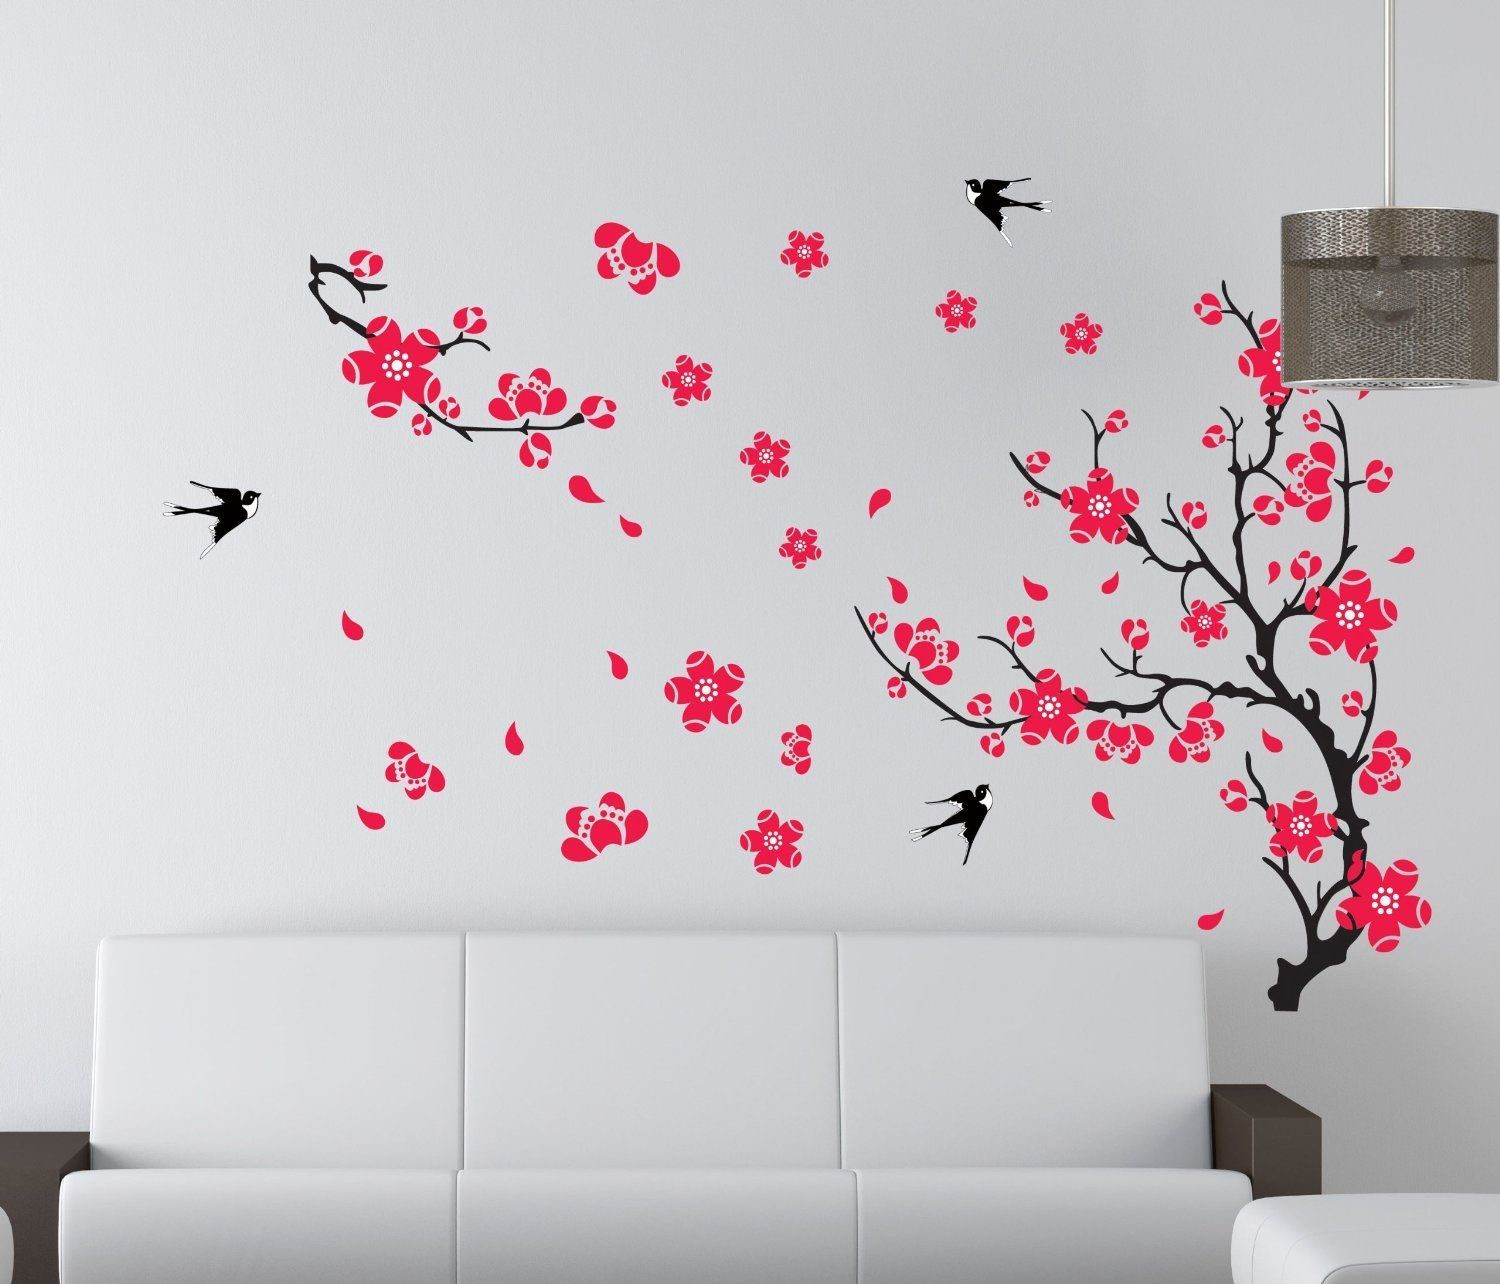 Large Plum Blossom Flower Removable Wall Sticker Decor Decal .